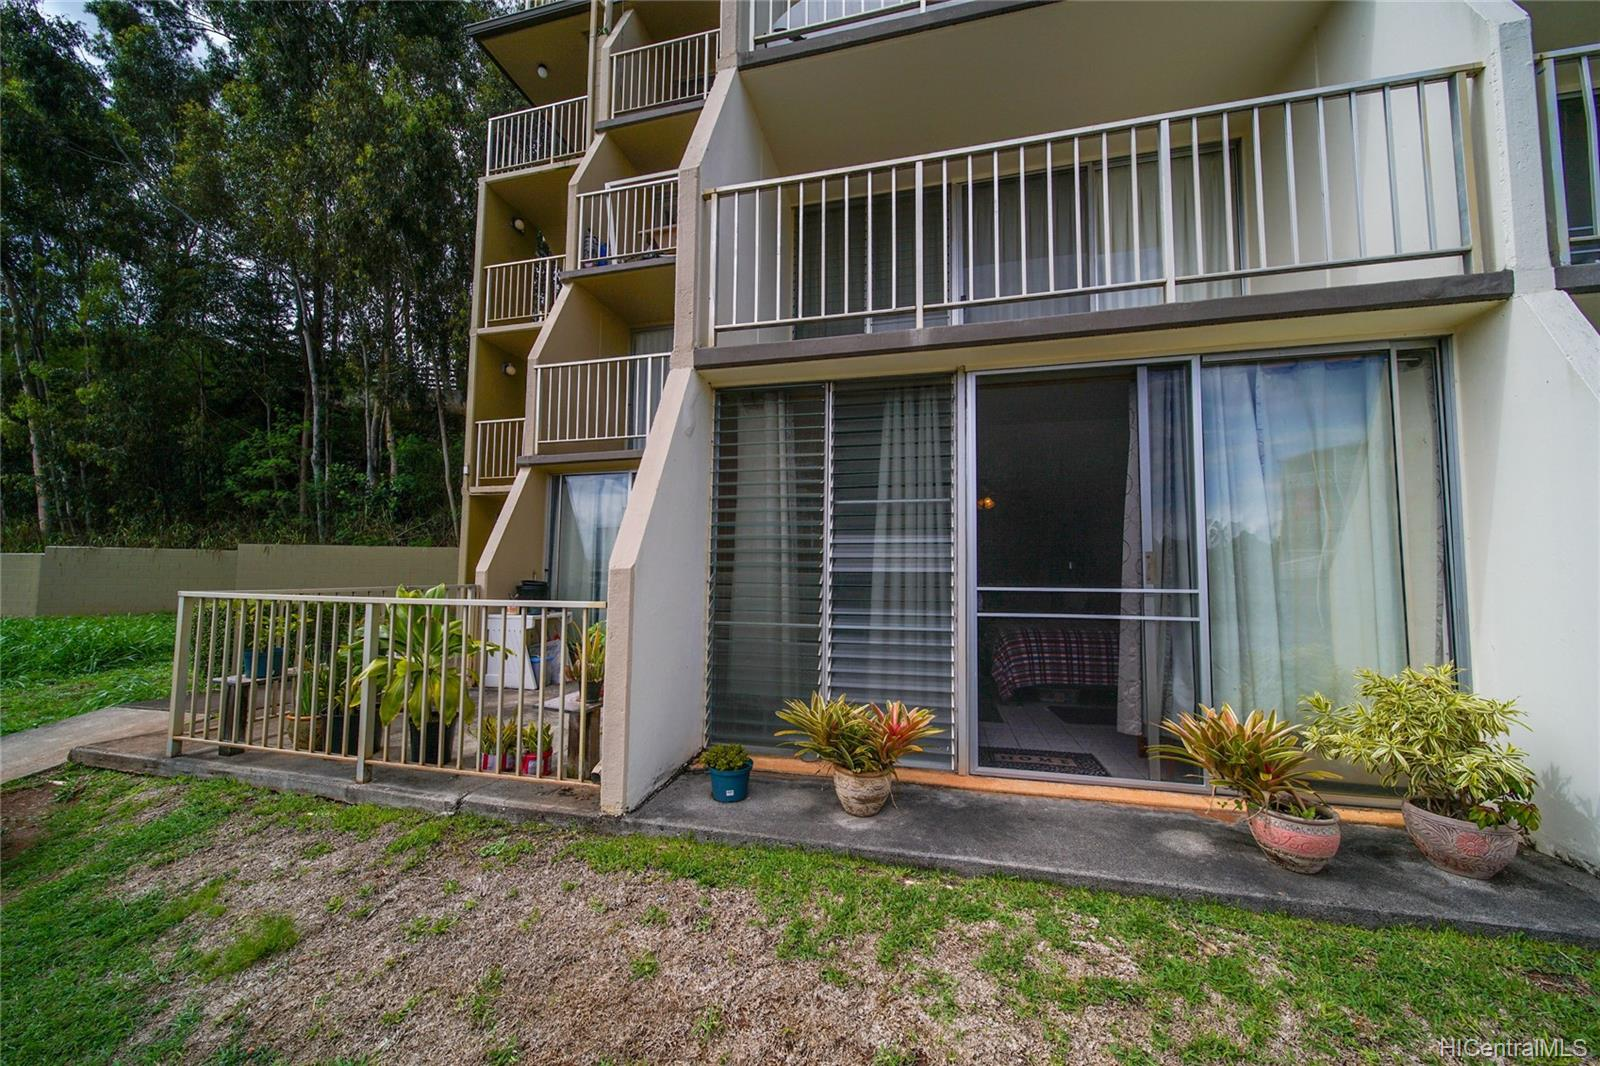 Valleyview Melemanu 95-2057 Waikalani Place  Unit C101